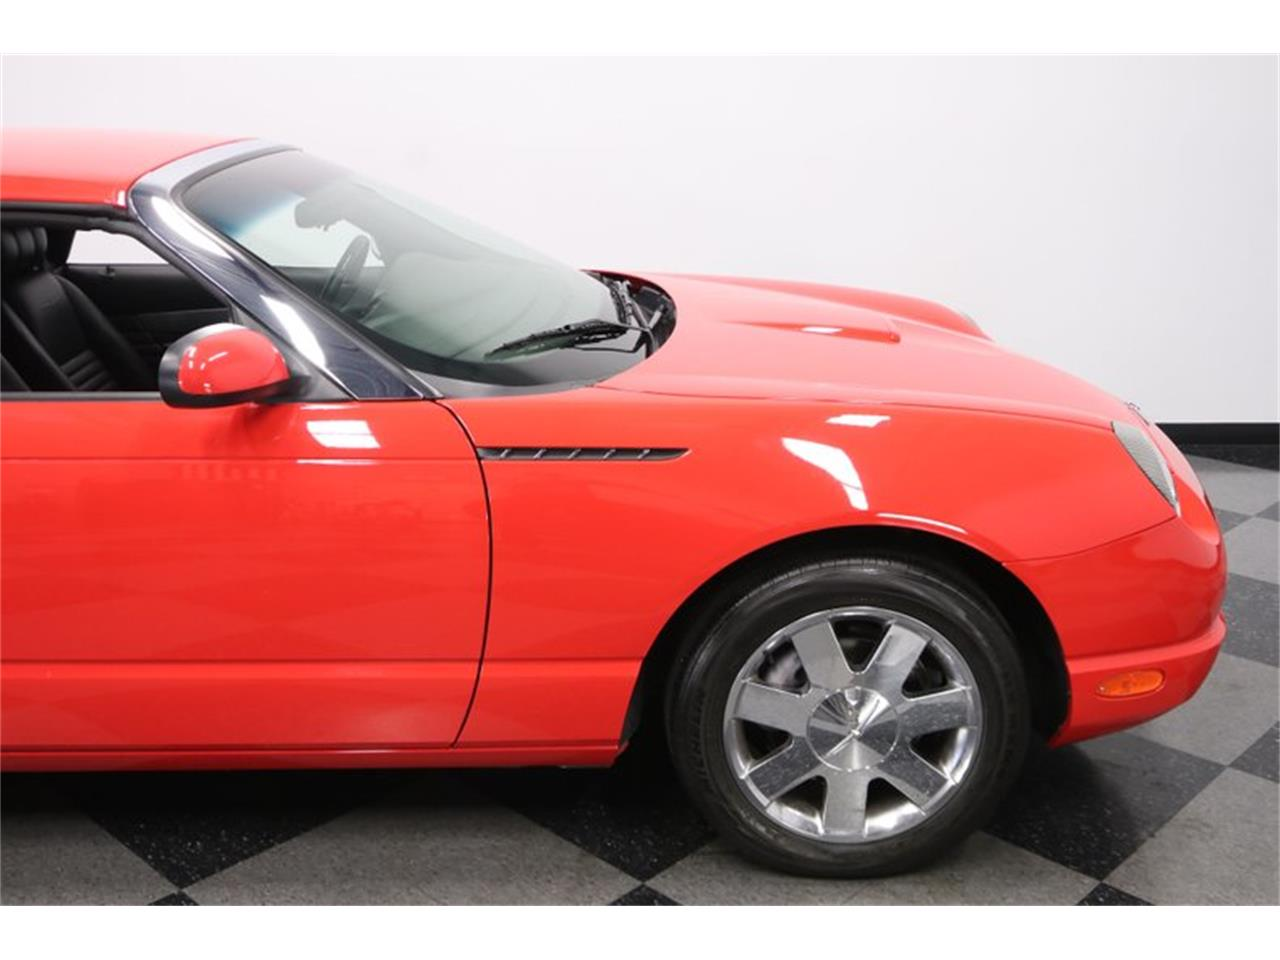 2002 Ford Thunderbird (CC-1355042) for sale in Lutz, Florida